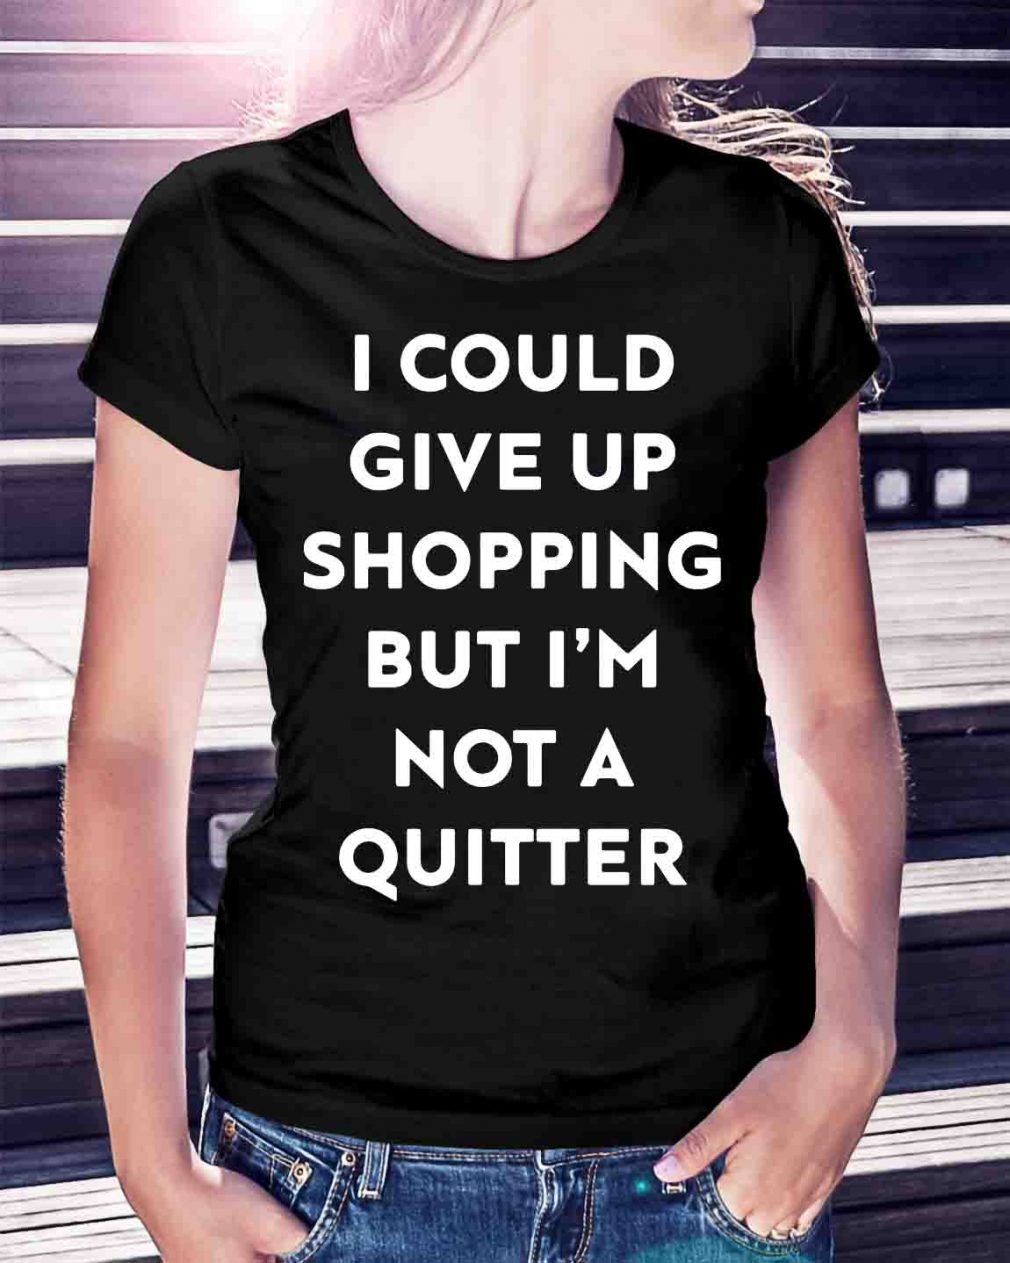 I could give up shopping but I'm not a quitter shirt